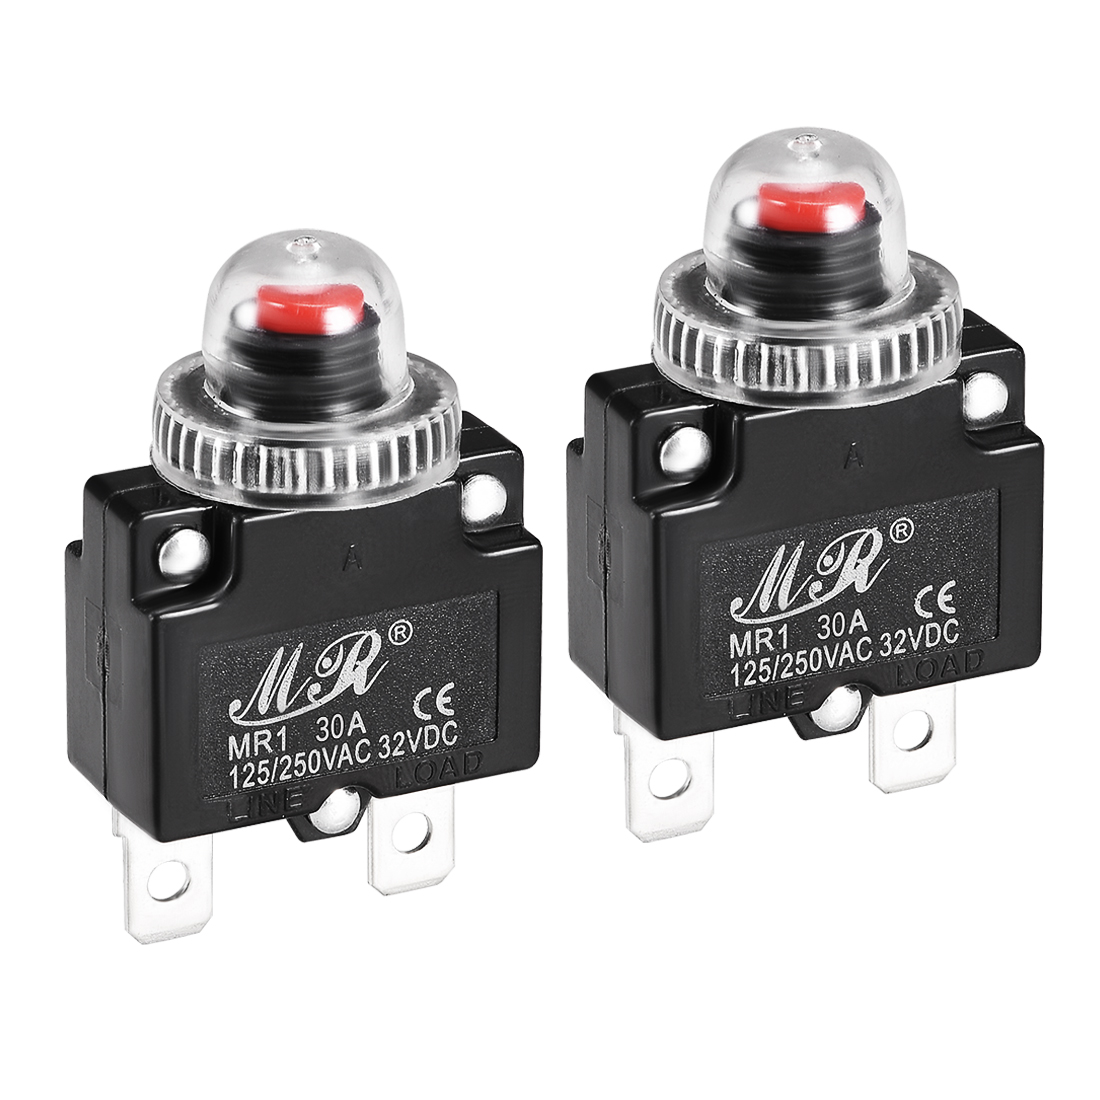 2 Pcs 30A 125/250V Push Button Reset Overload Protector Thermal Circuit Breaker